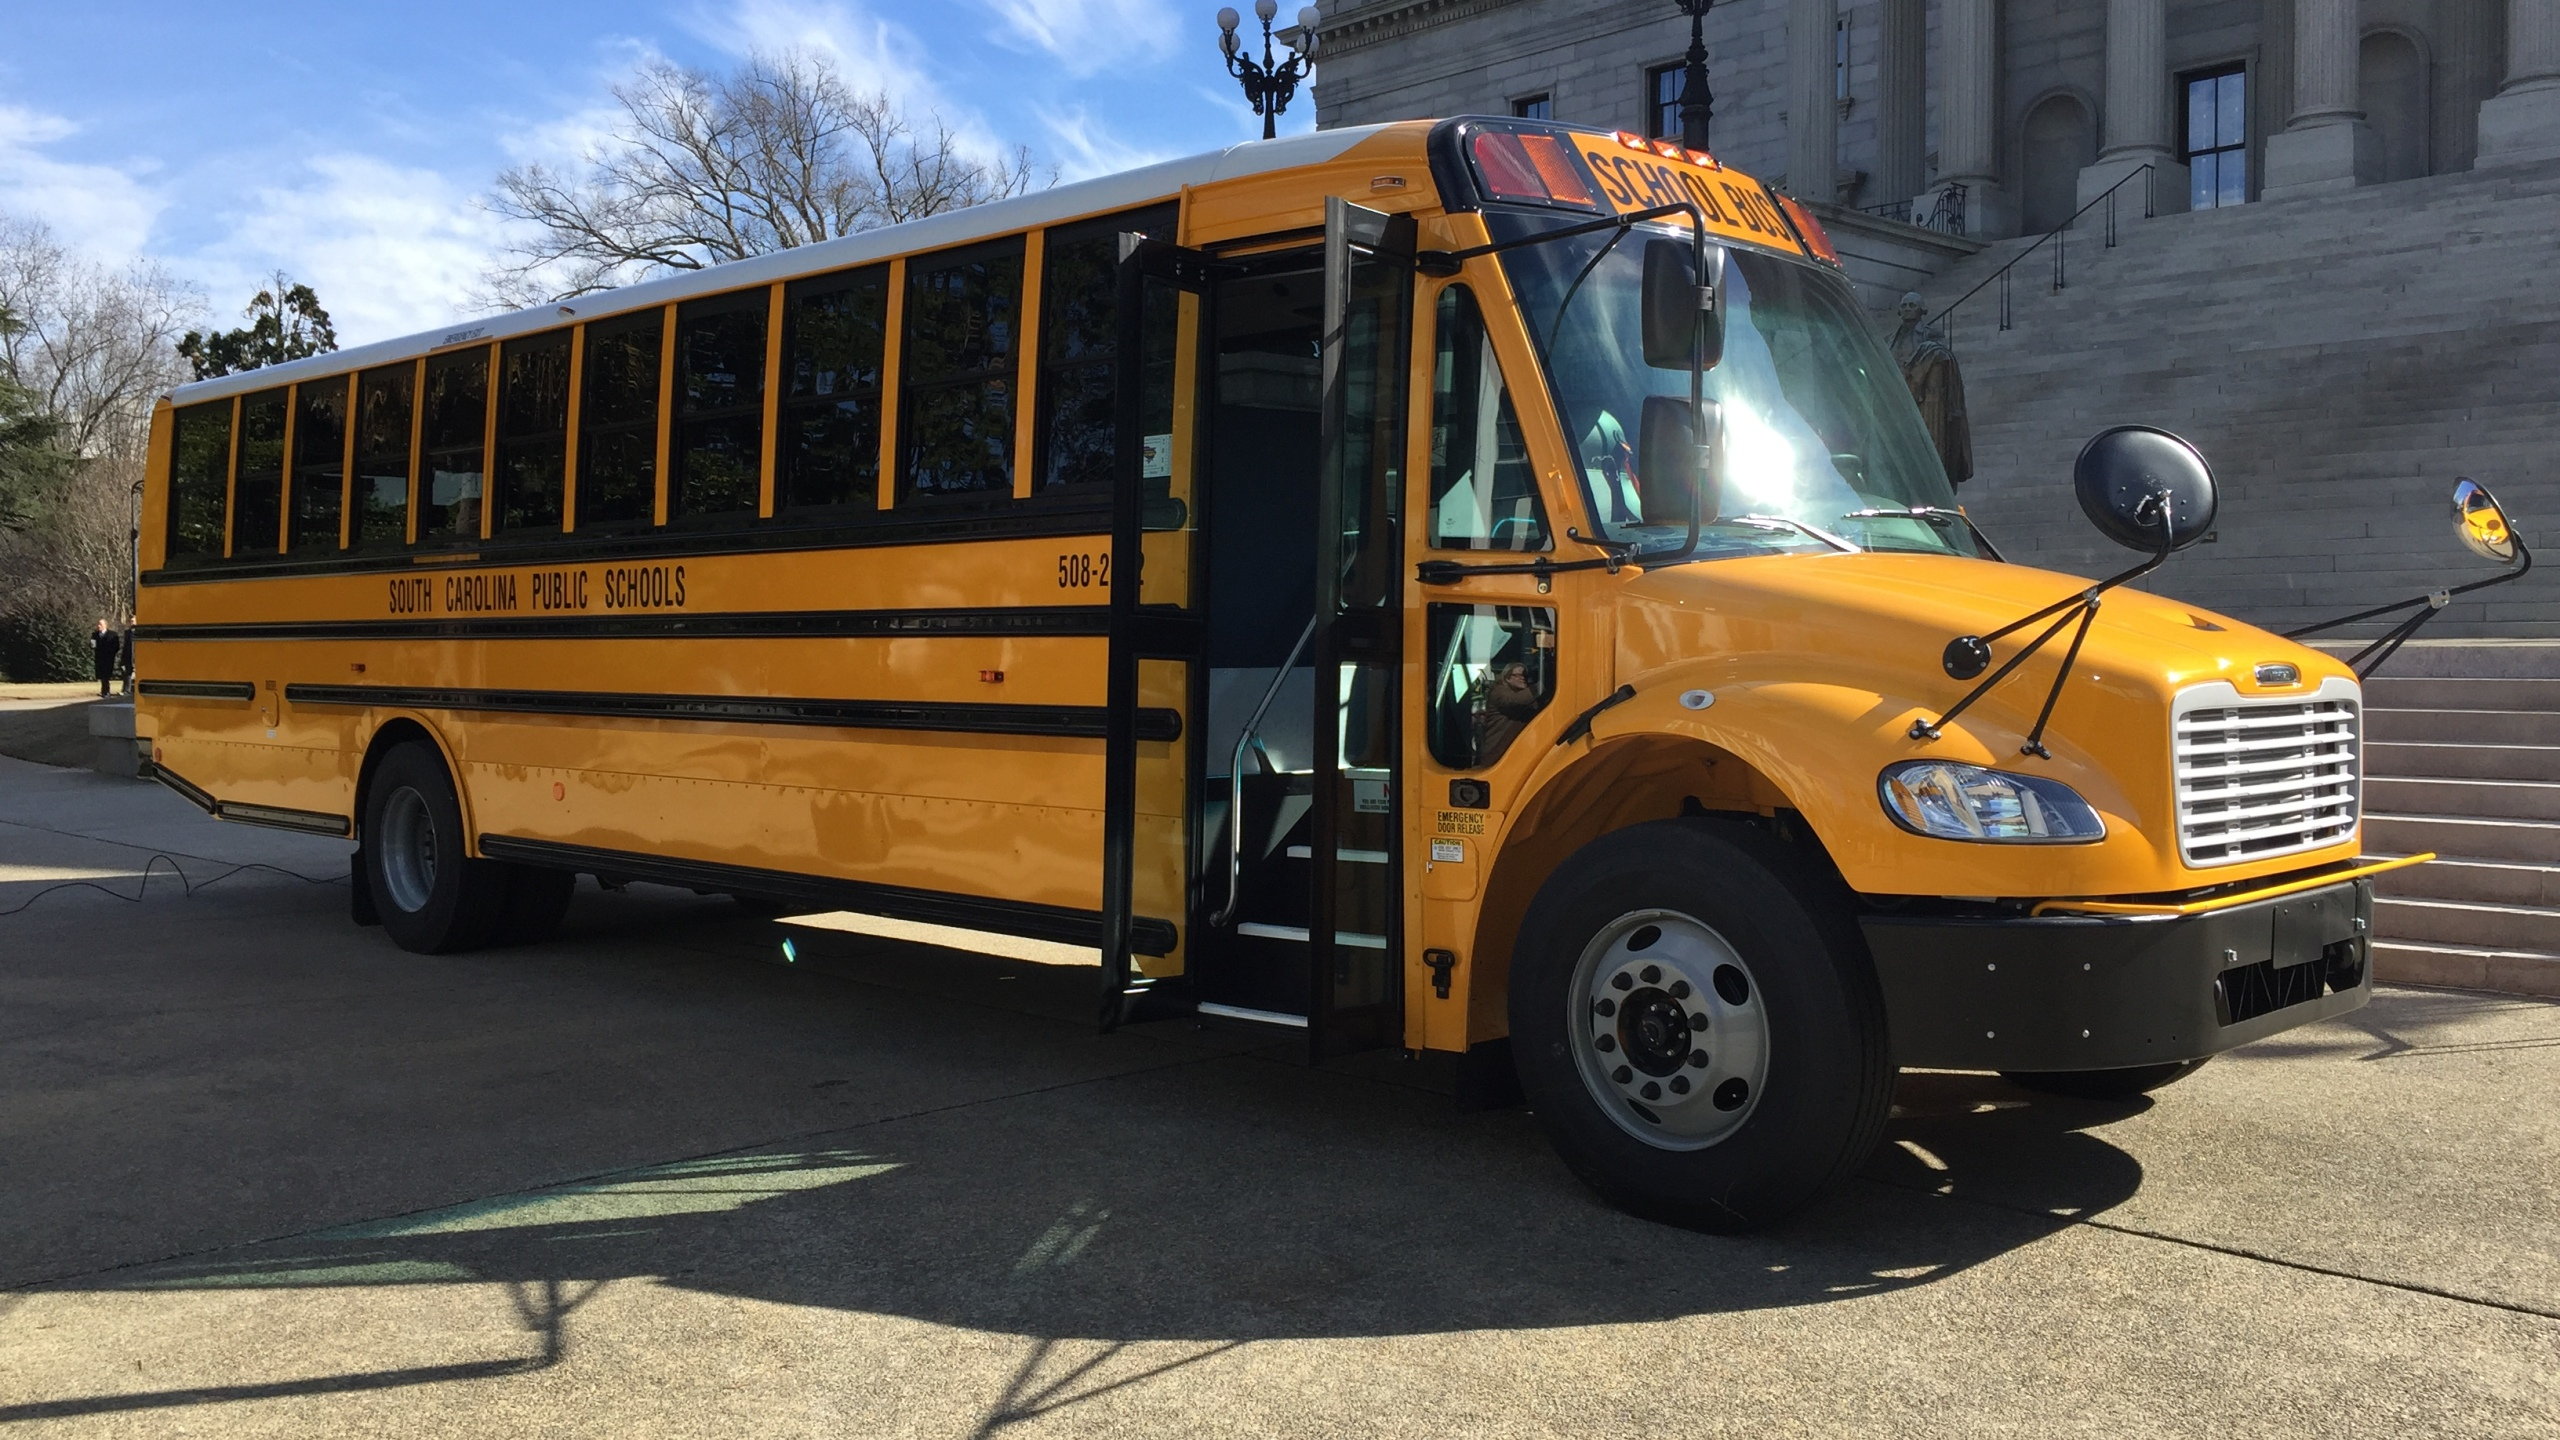 school-bus-at-statehouse_187047